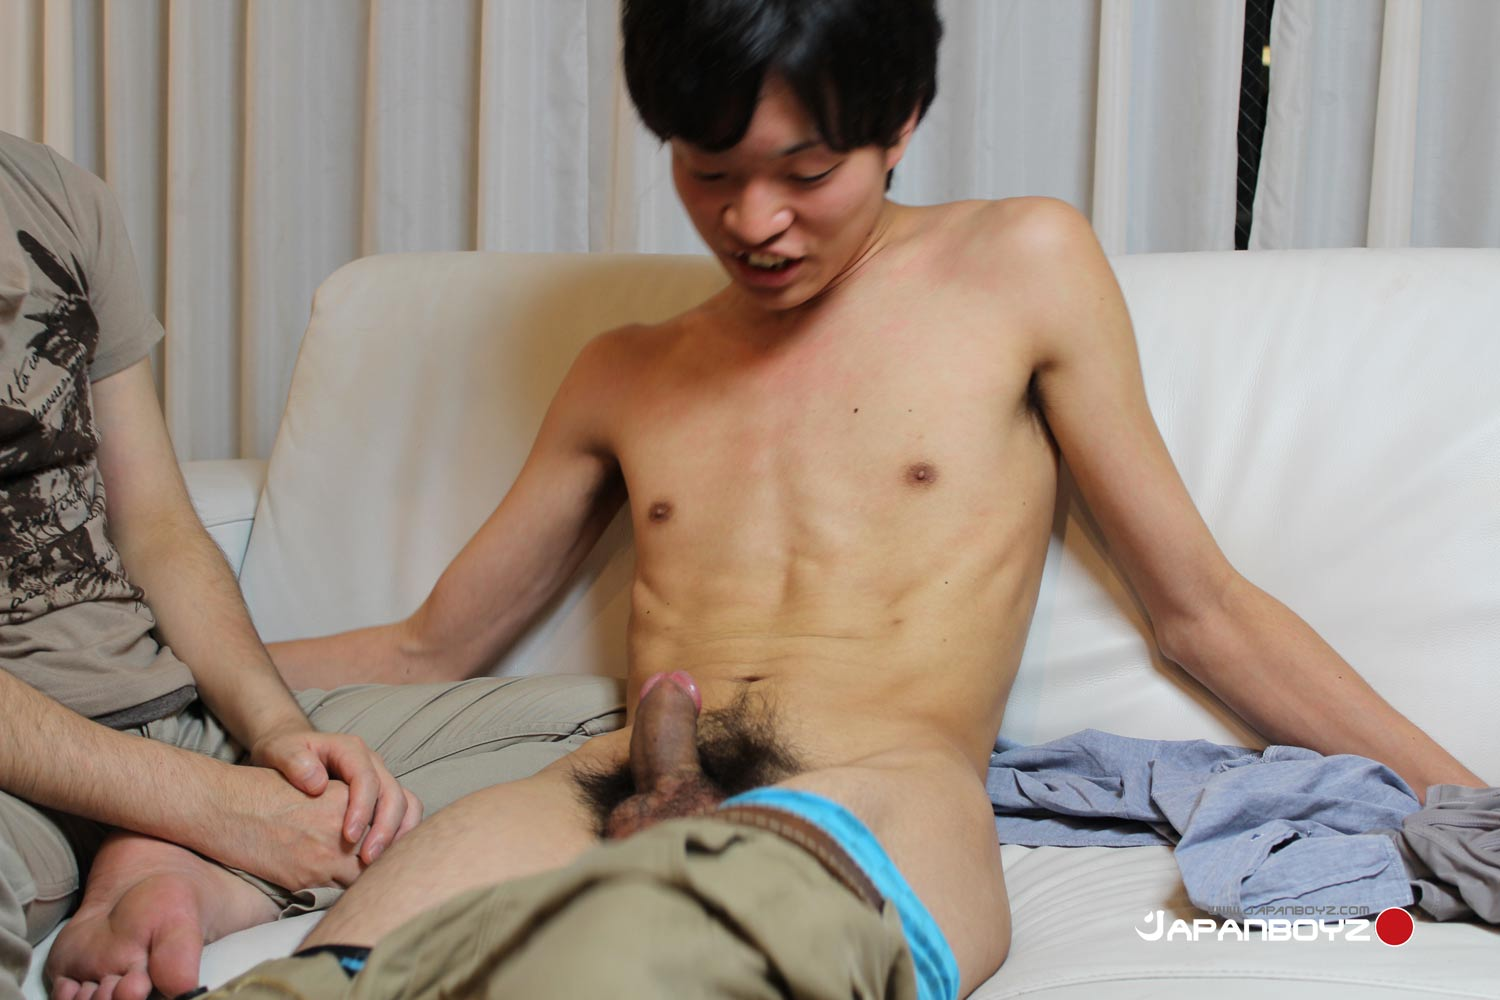 JapanBoyz-Nobu-and-Hira-Japanese-Boys-Sucking-Big-Asian-Cocks-Amateur-Gay-Porn-23 Japanese Boys Trading Blow Jobs With Their Big Asian Cocks